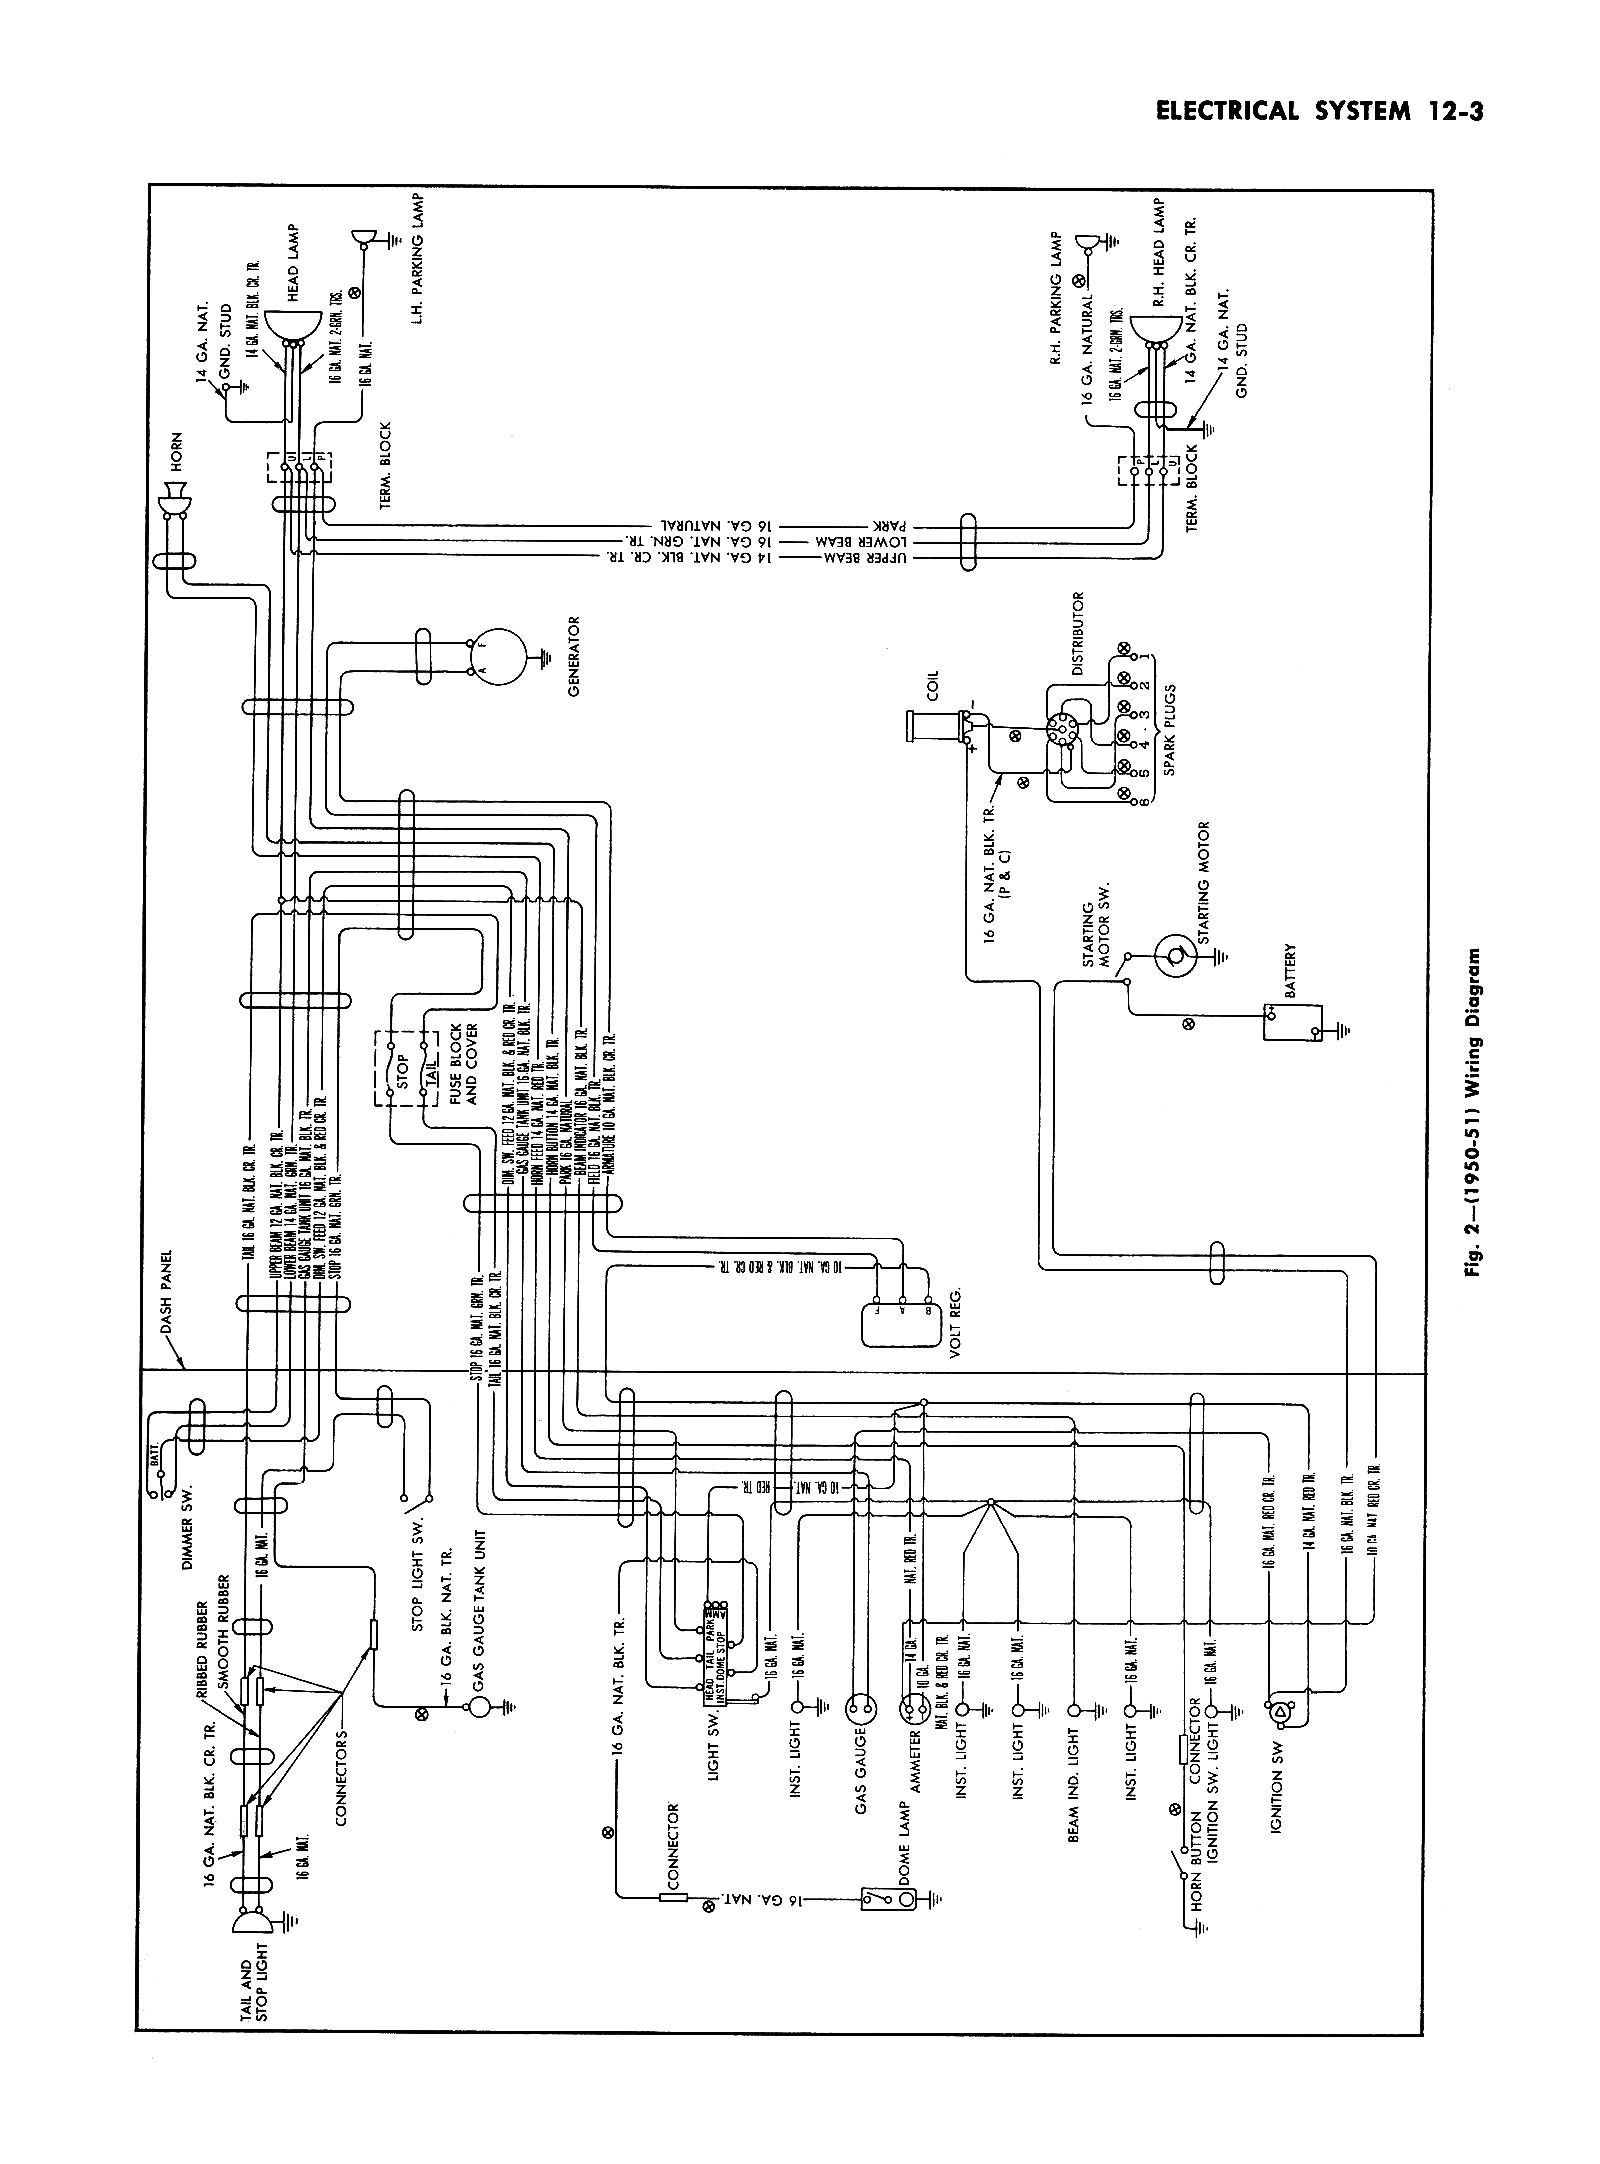 1964 Chevy Truck Turn Signal Wiring Diagrams Wiring